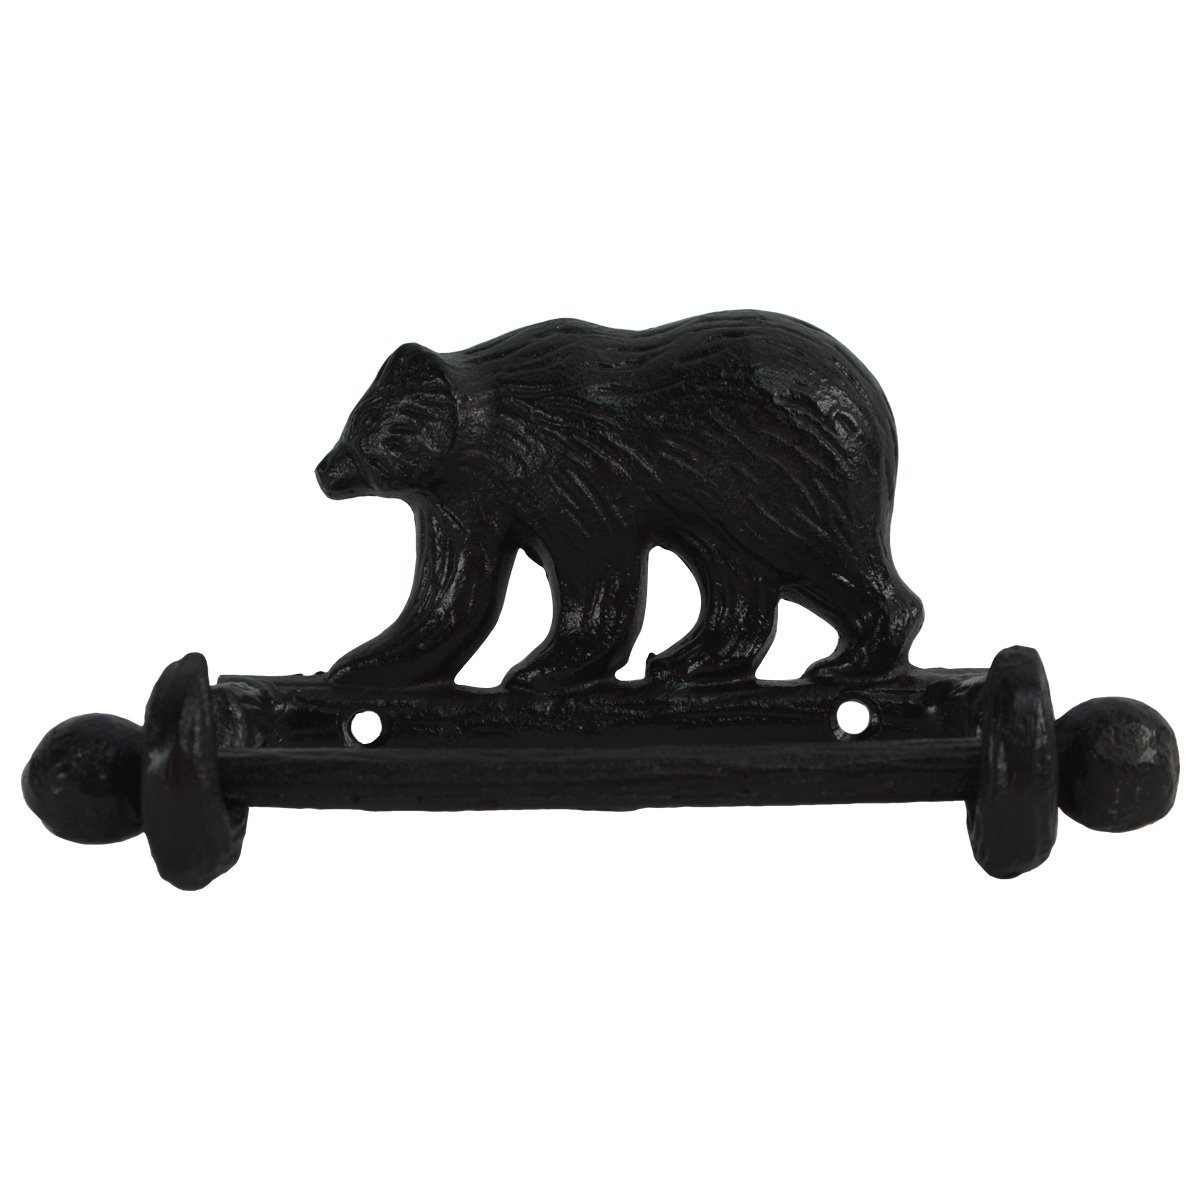 Black Metal Wall Mount Bear Toilet Paper TP Roll Holder Rustic Cabin Bath Decor